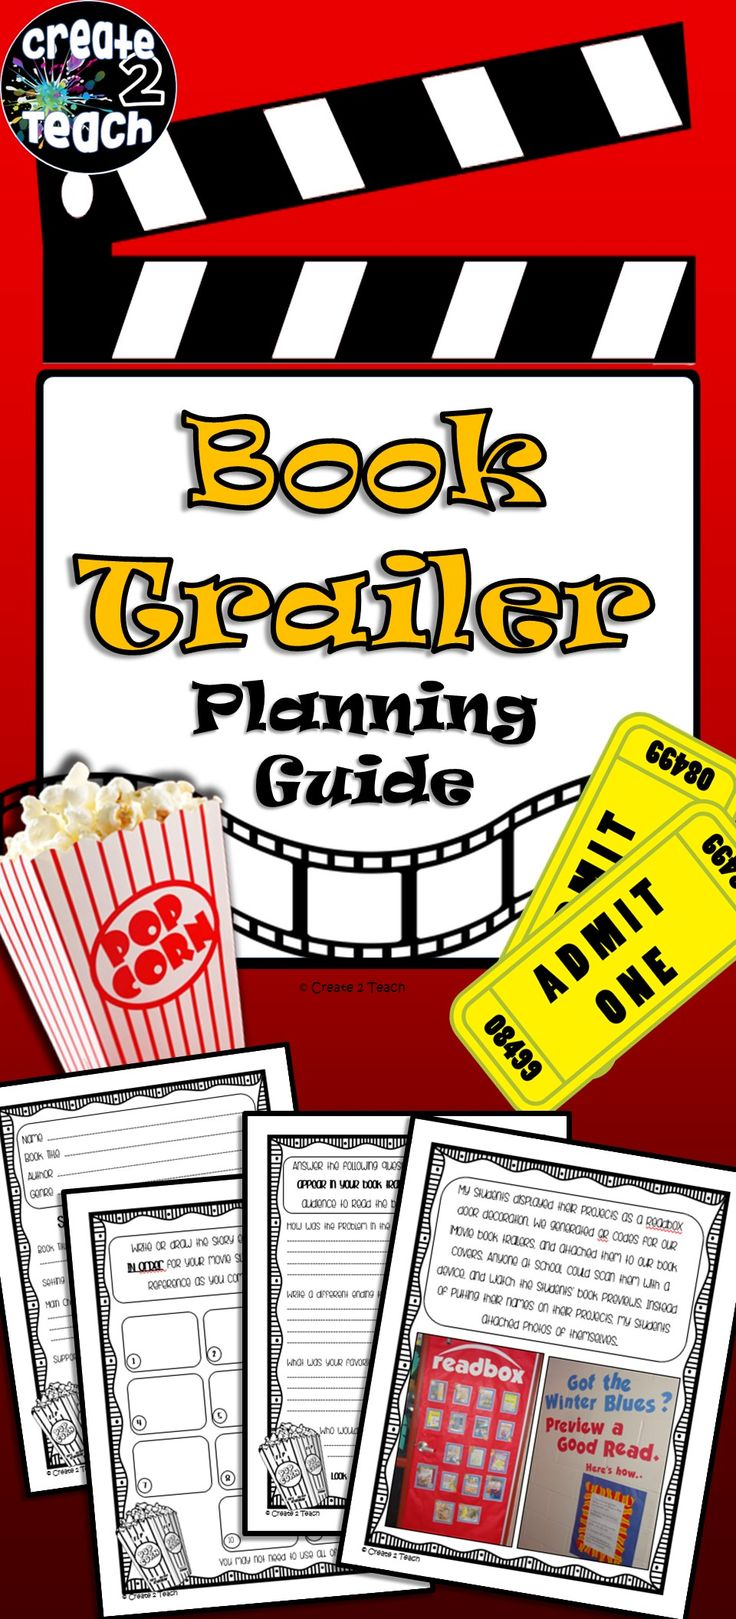 Book Trailer Graphic Organizer: No more dead-end book reports! Book Trailers are a great way to get upper grade elementary students motivated to read!! This multi-page graphic organizer will guide your students' thinking and creativity, as they produce and direct their own book trailer in iMovie!